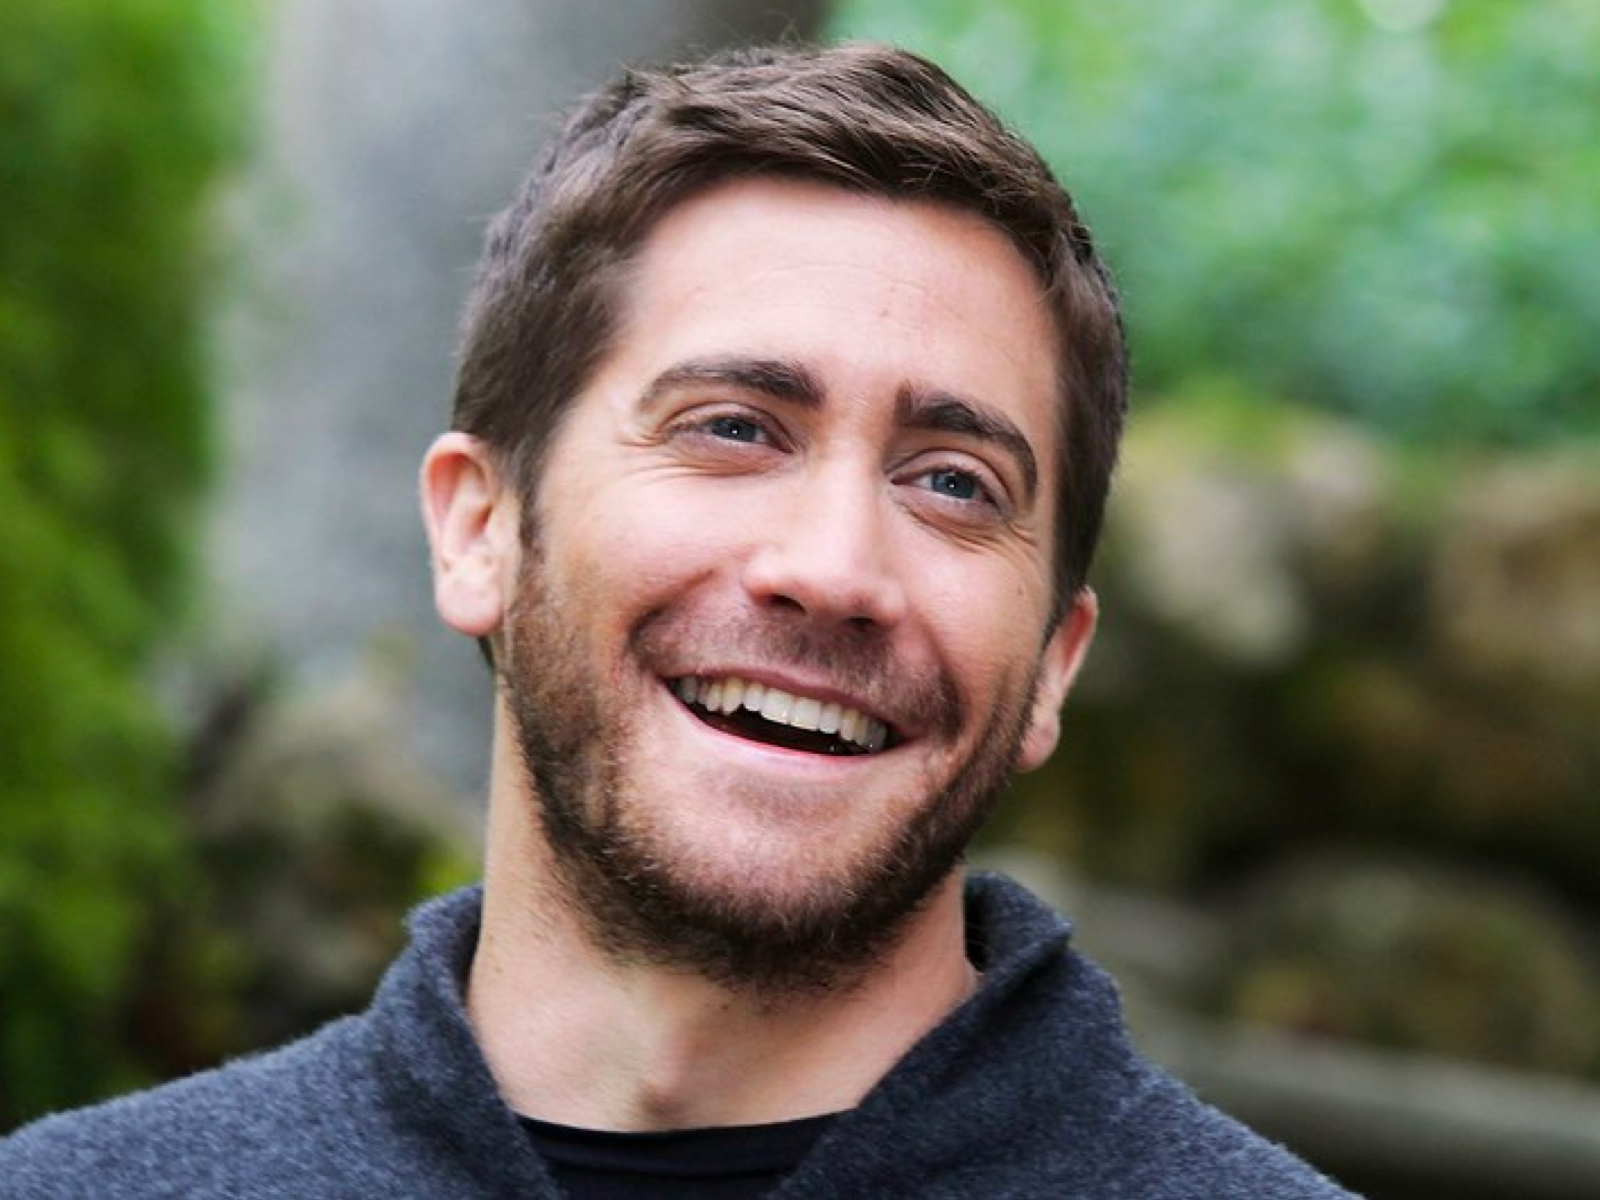 Jake Gyllenhaal Hair - Get The Look with Hades Matte Paste Natural Hair Wax